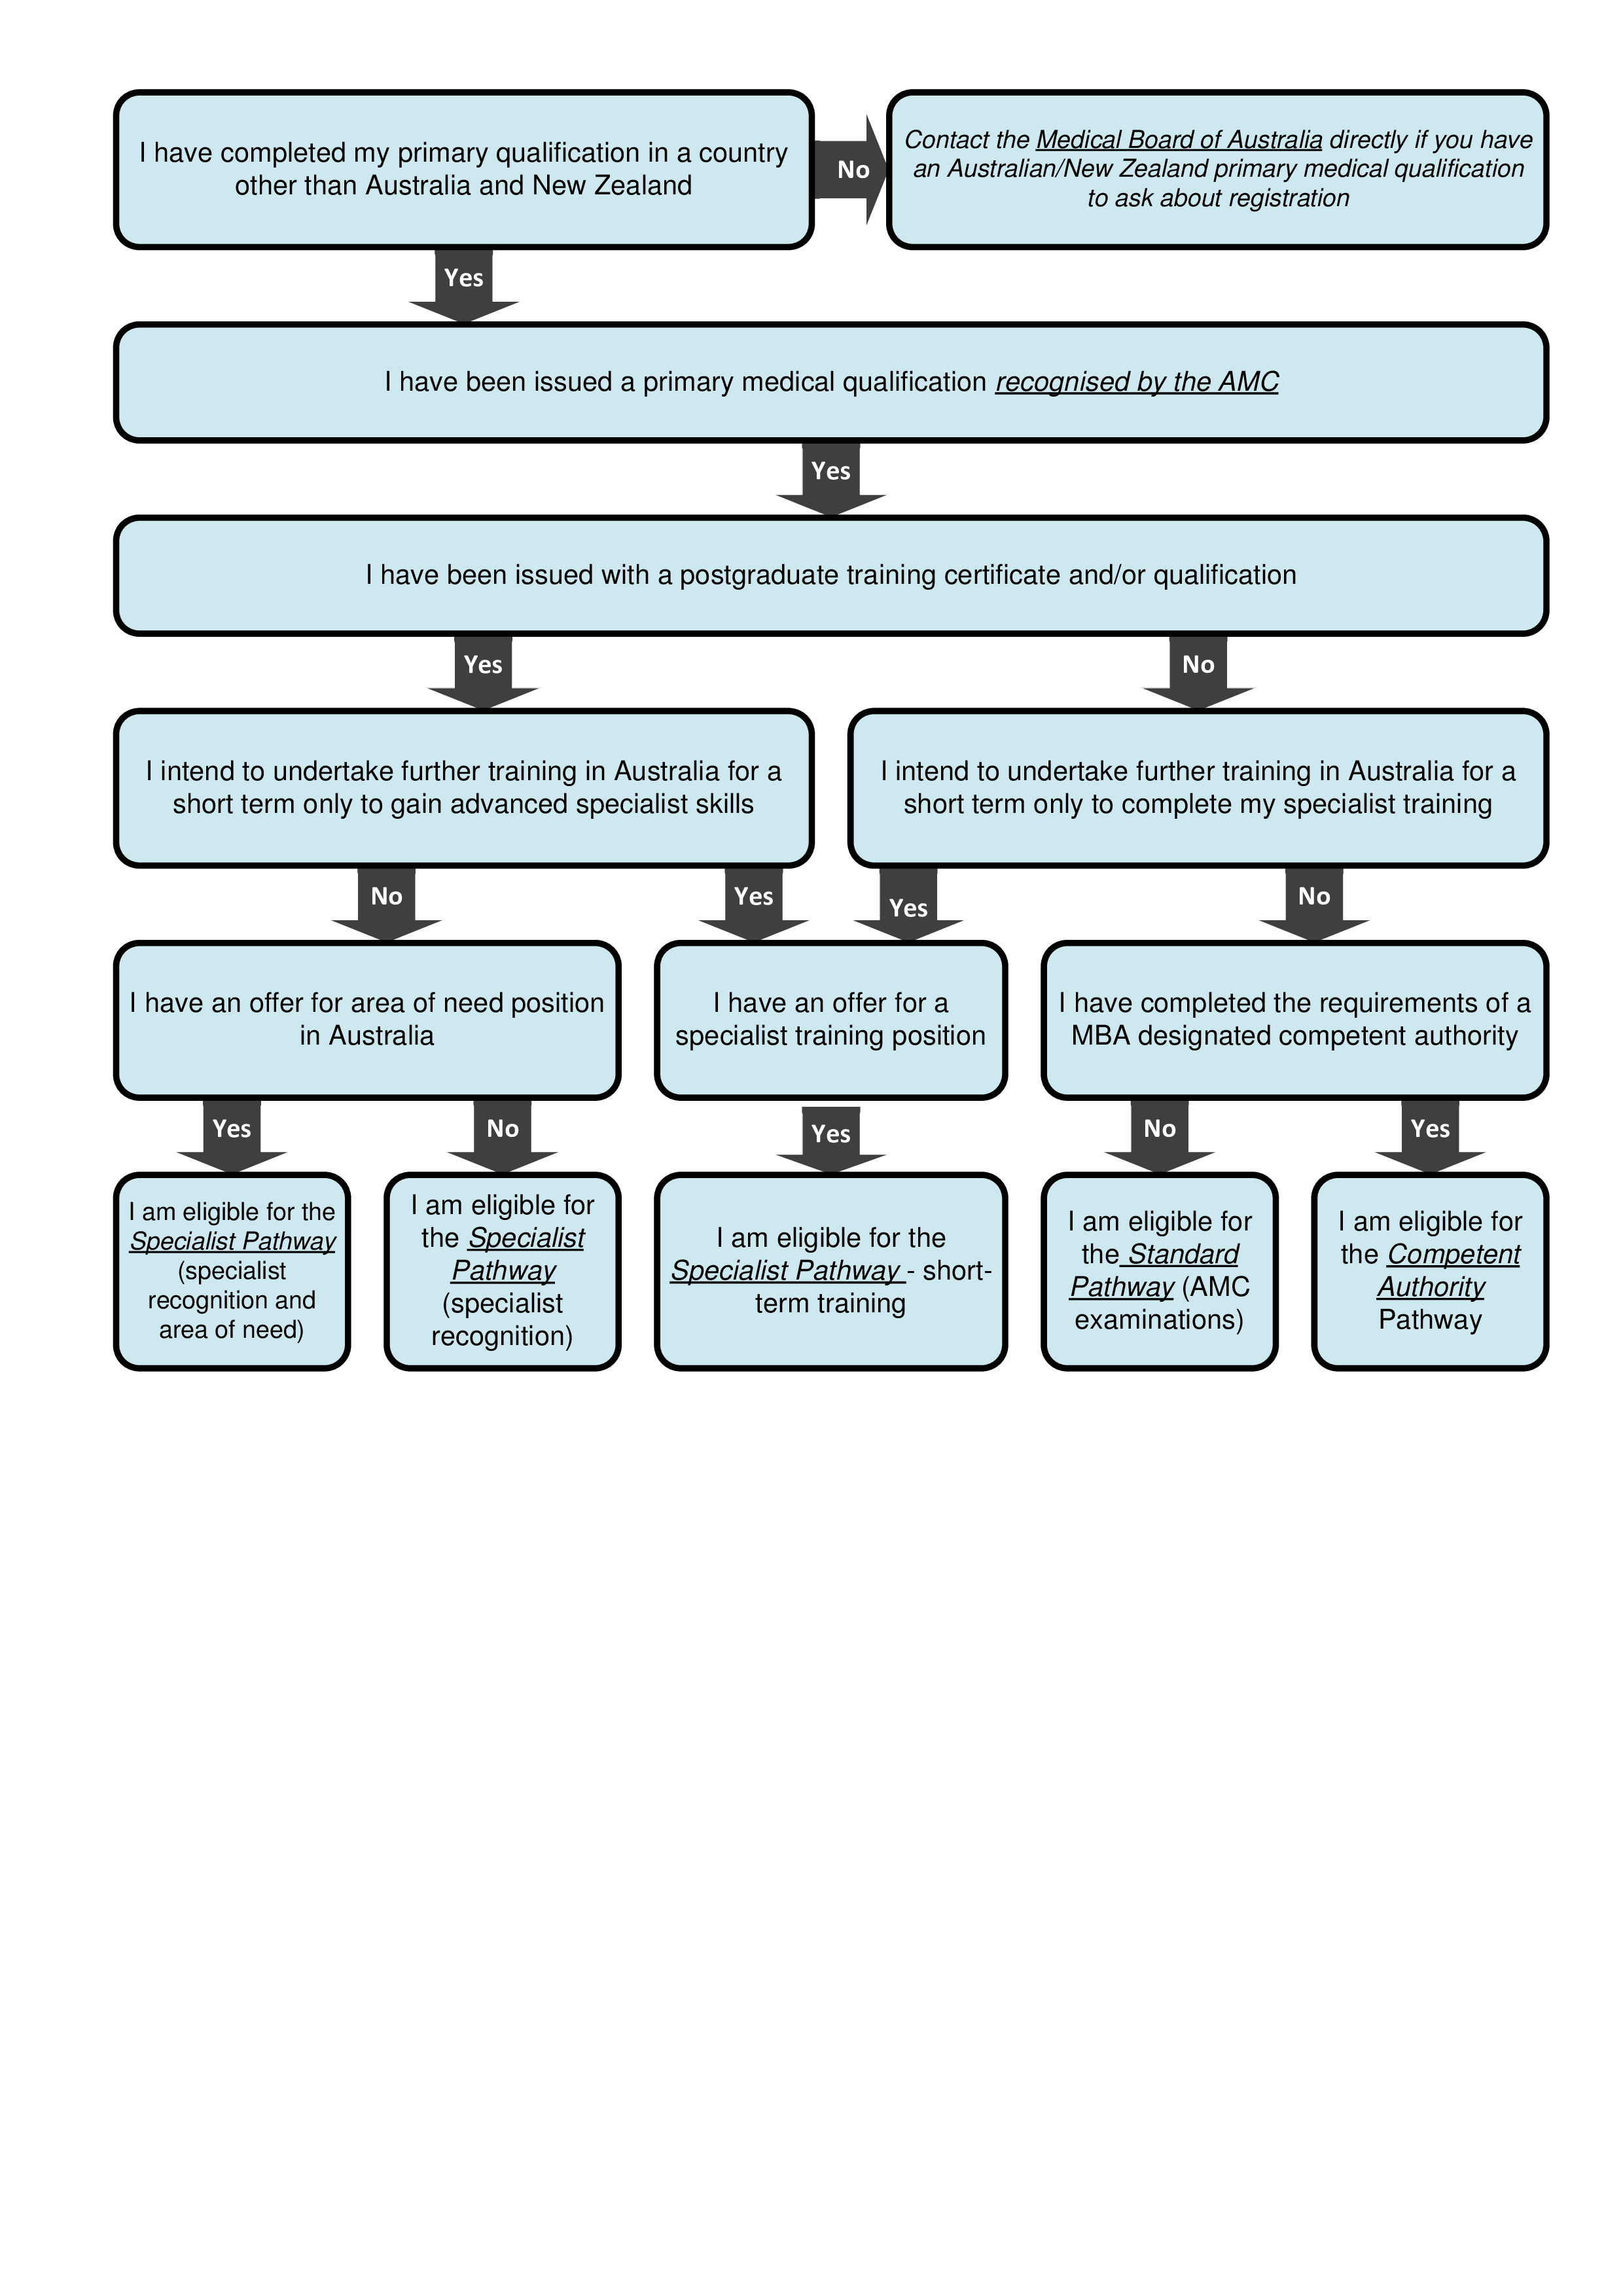 Self-check to determine which pathway to take